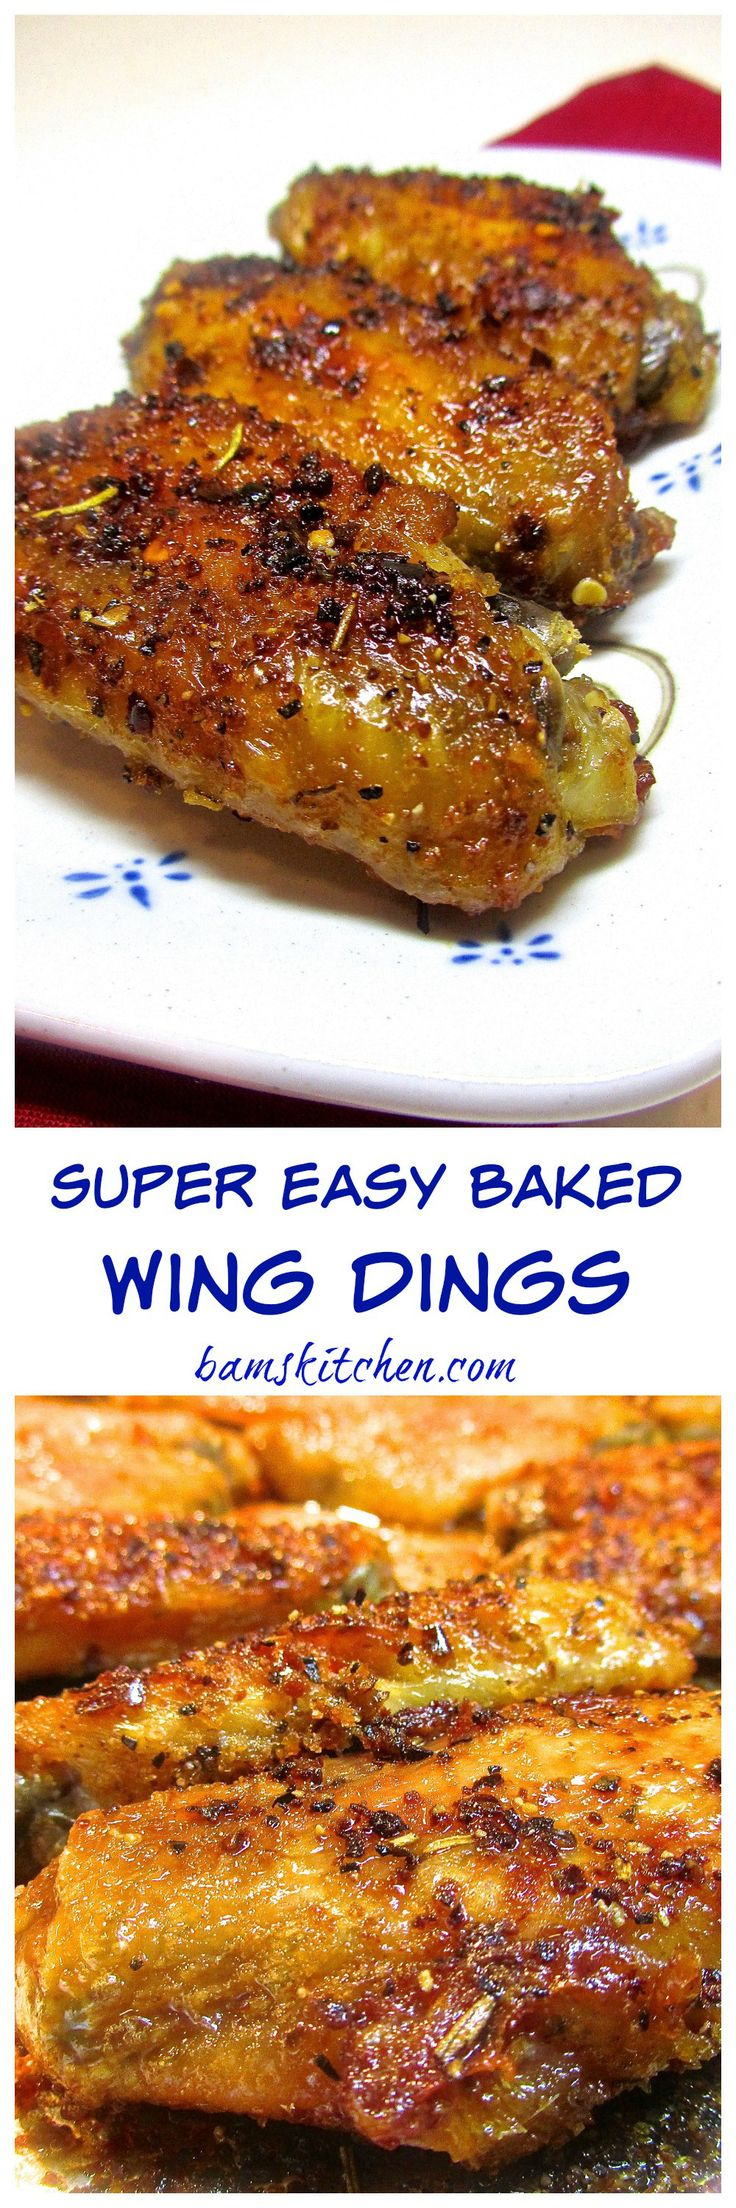 Super Easy Baked Wing Dings - Bam's Kitchen